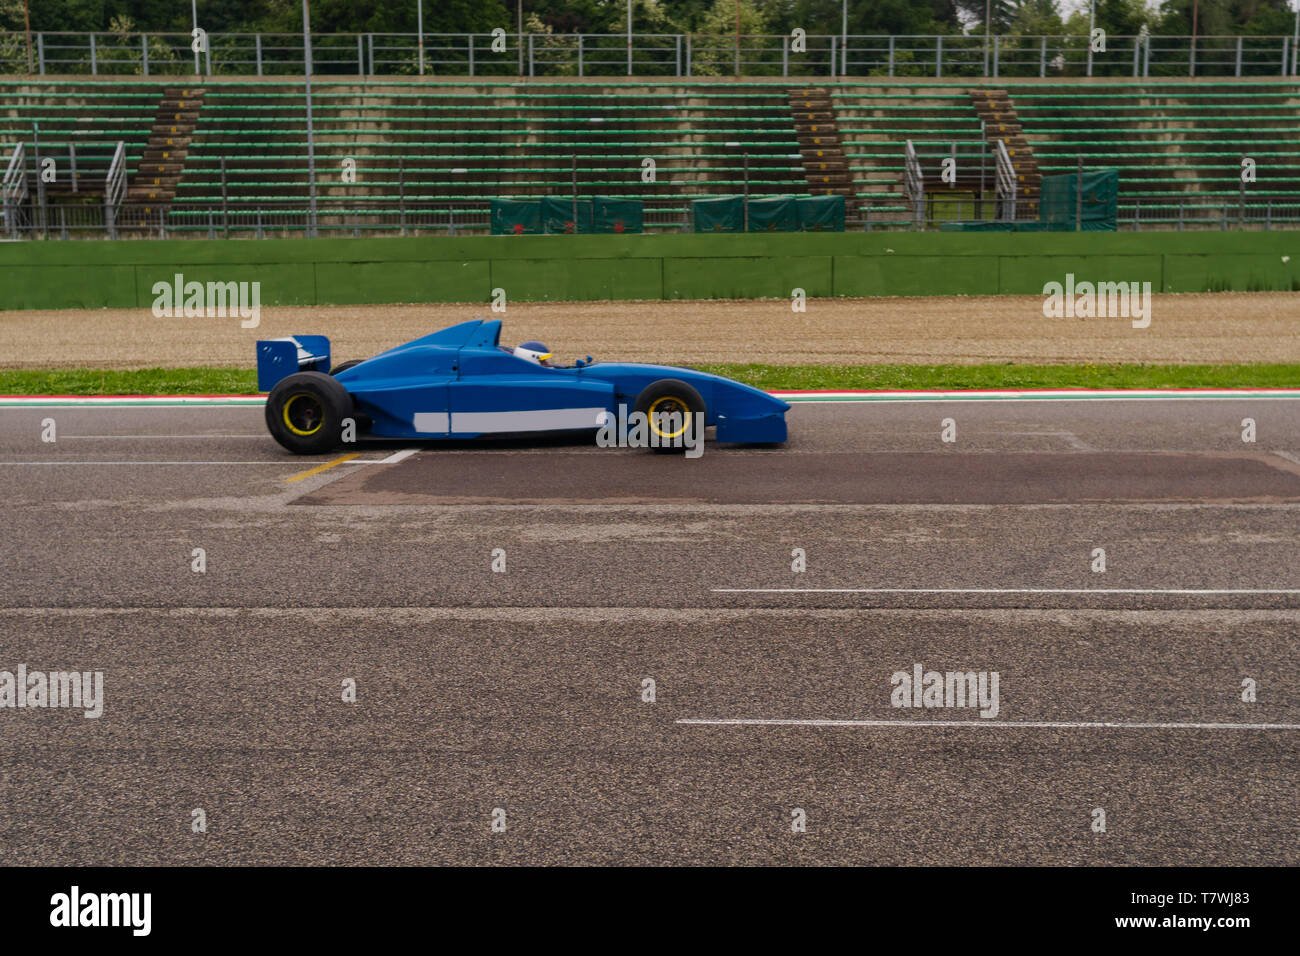 formula car is flying on a track Stock Photo